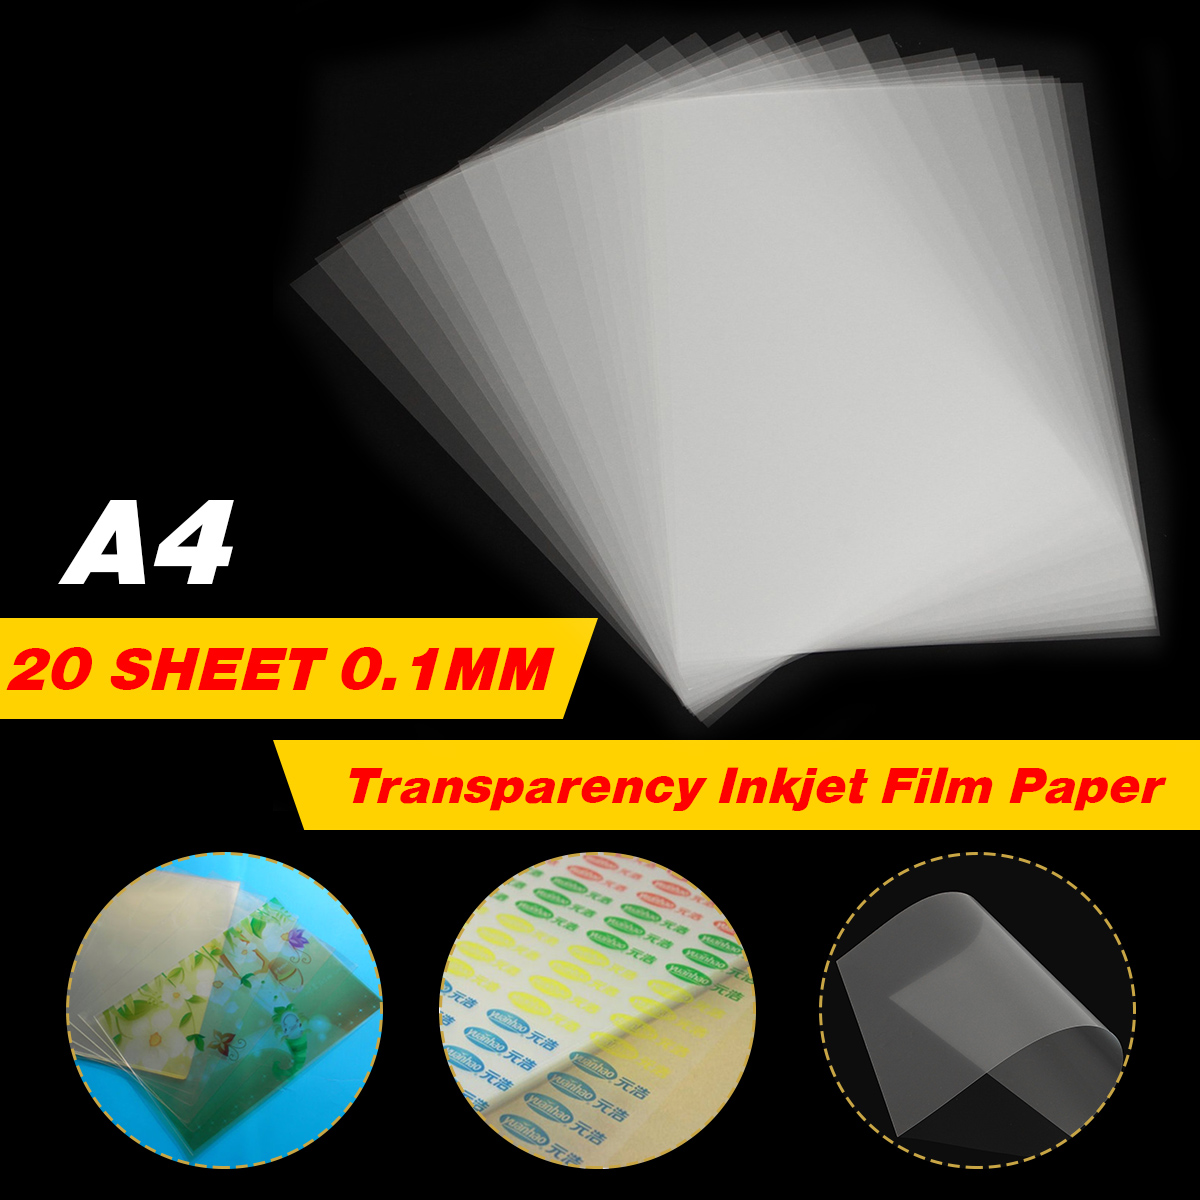 20 Sheet Screen Printing Transparency Inkjet Film Paper PCB Print Stencil Design Inkjet Film Retains The Ink Thickness 0.12mm